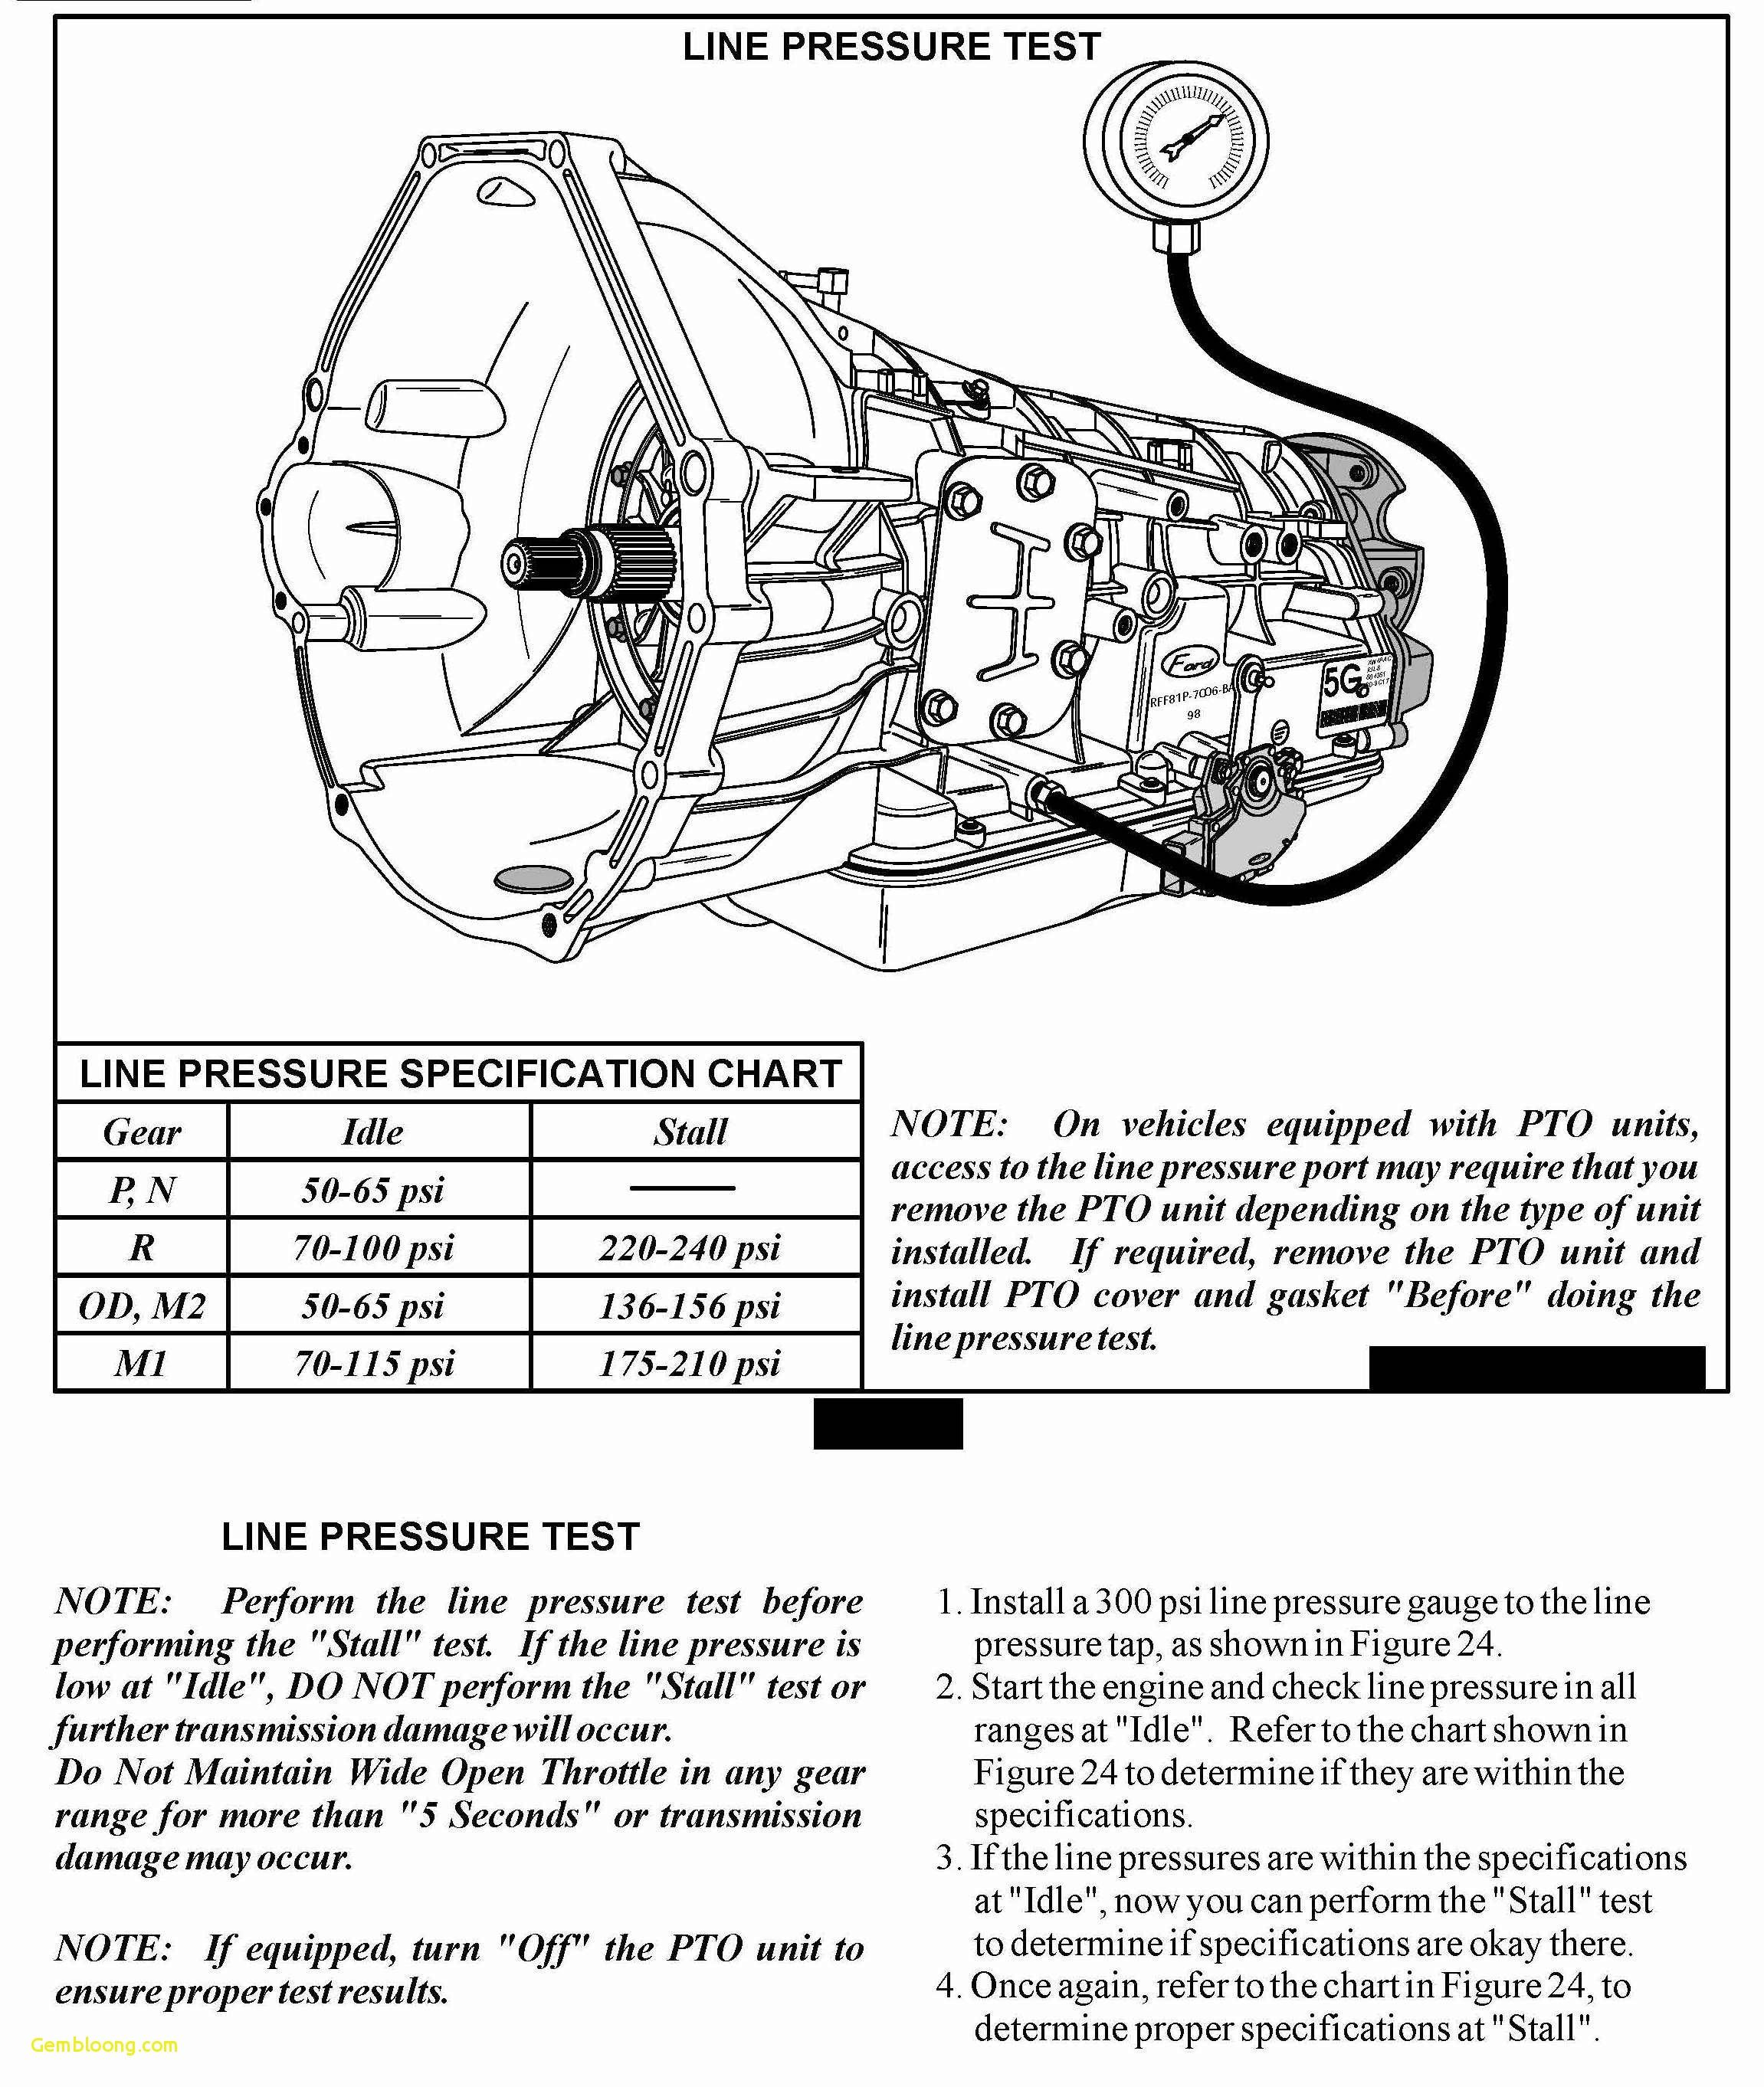 Engine Run Stand Wiring Diagram Download ford Trucks Wiring Diagrams ford Truck Wiring Diagrams Of Engine Run Stand Wiring Diagram